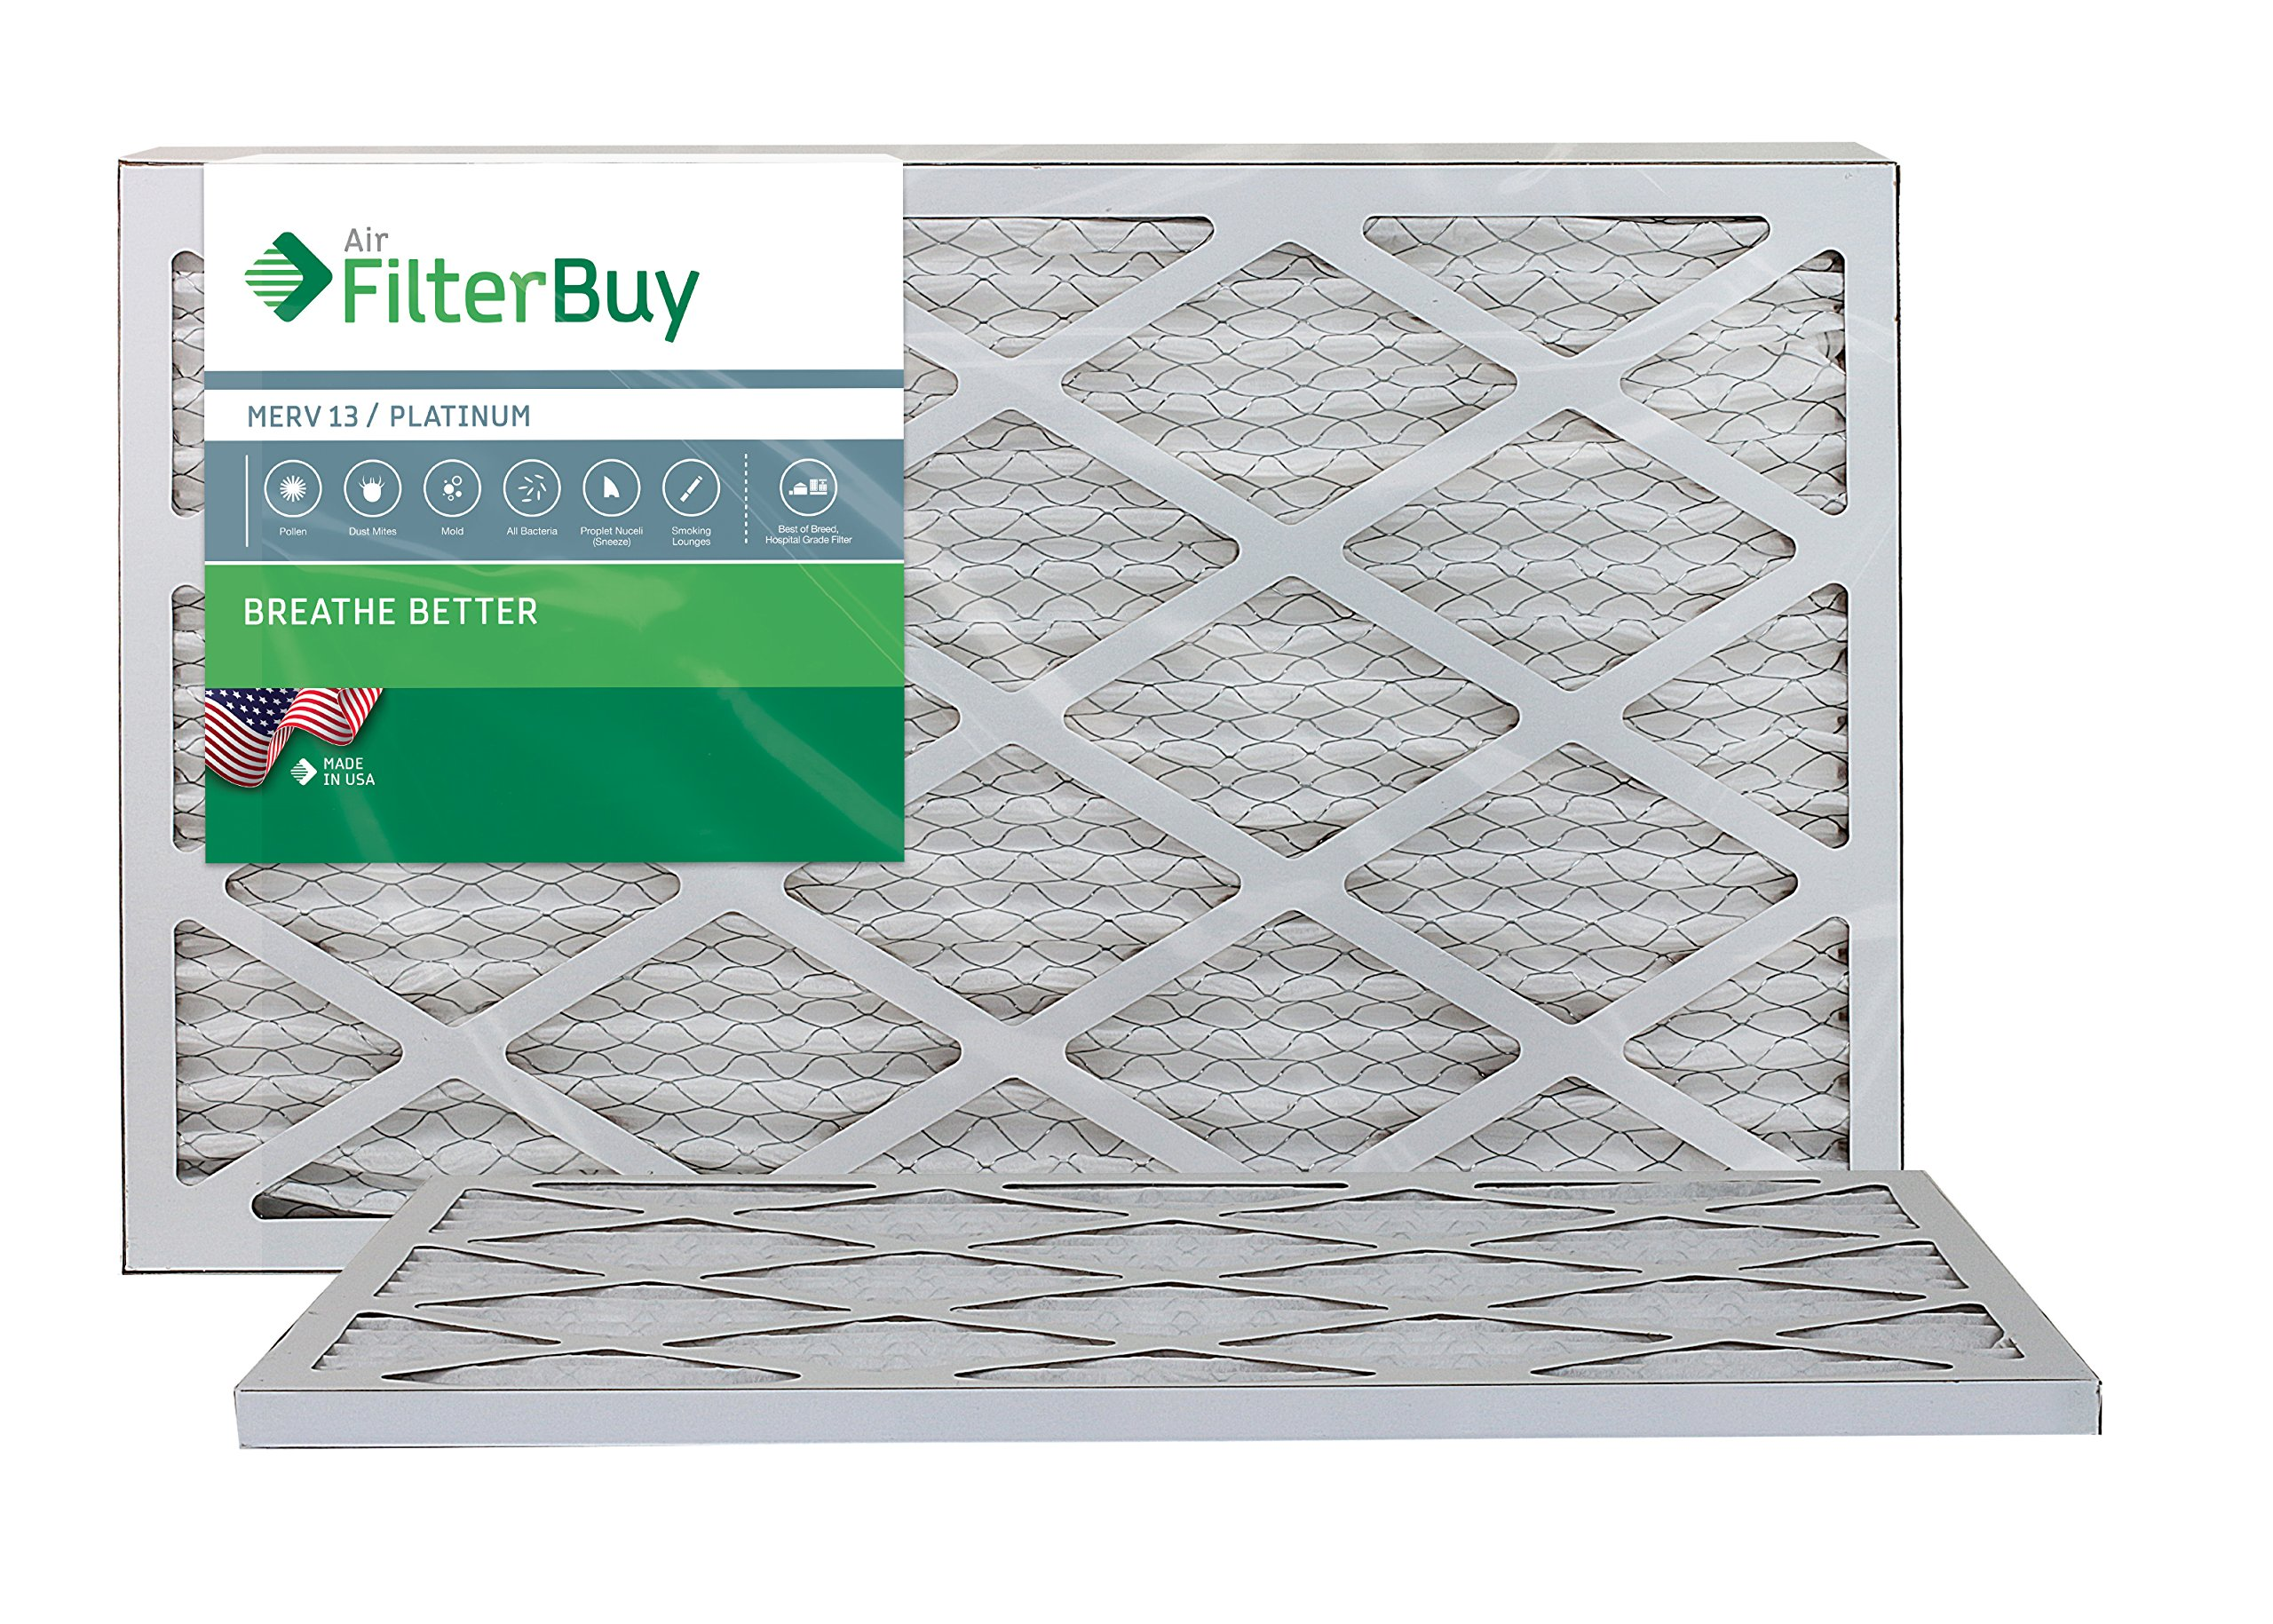 AFB Platinum MERV 13 10x20x1 Pleated AC Furnace Air Filter. Pack of 2 Filters. 100% produced in the USA. by FilterBuy